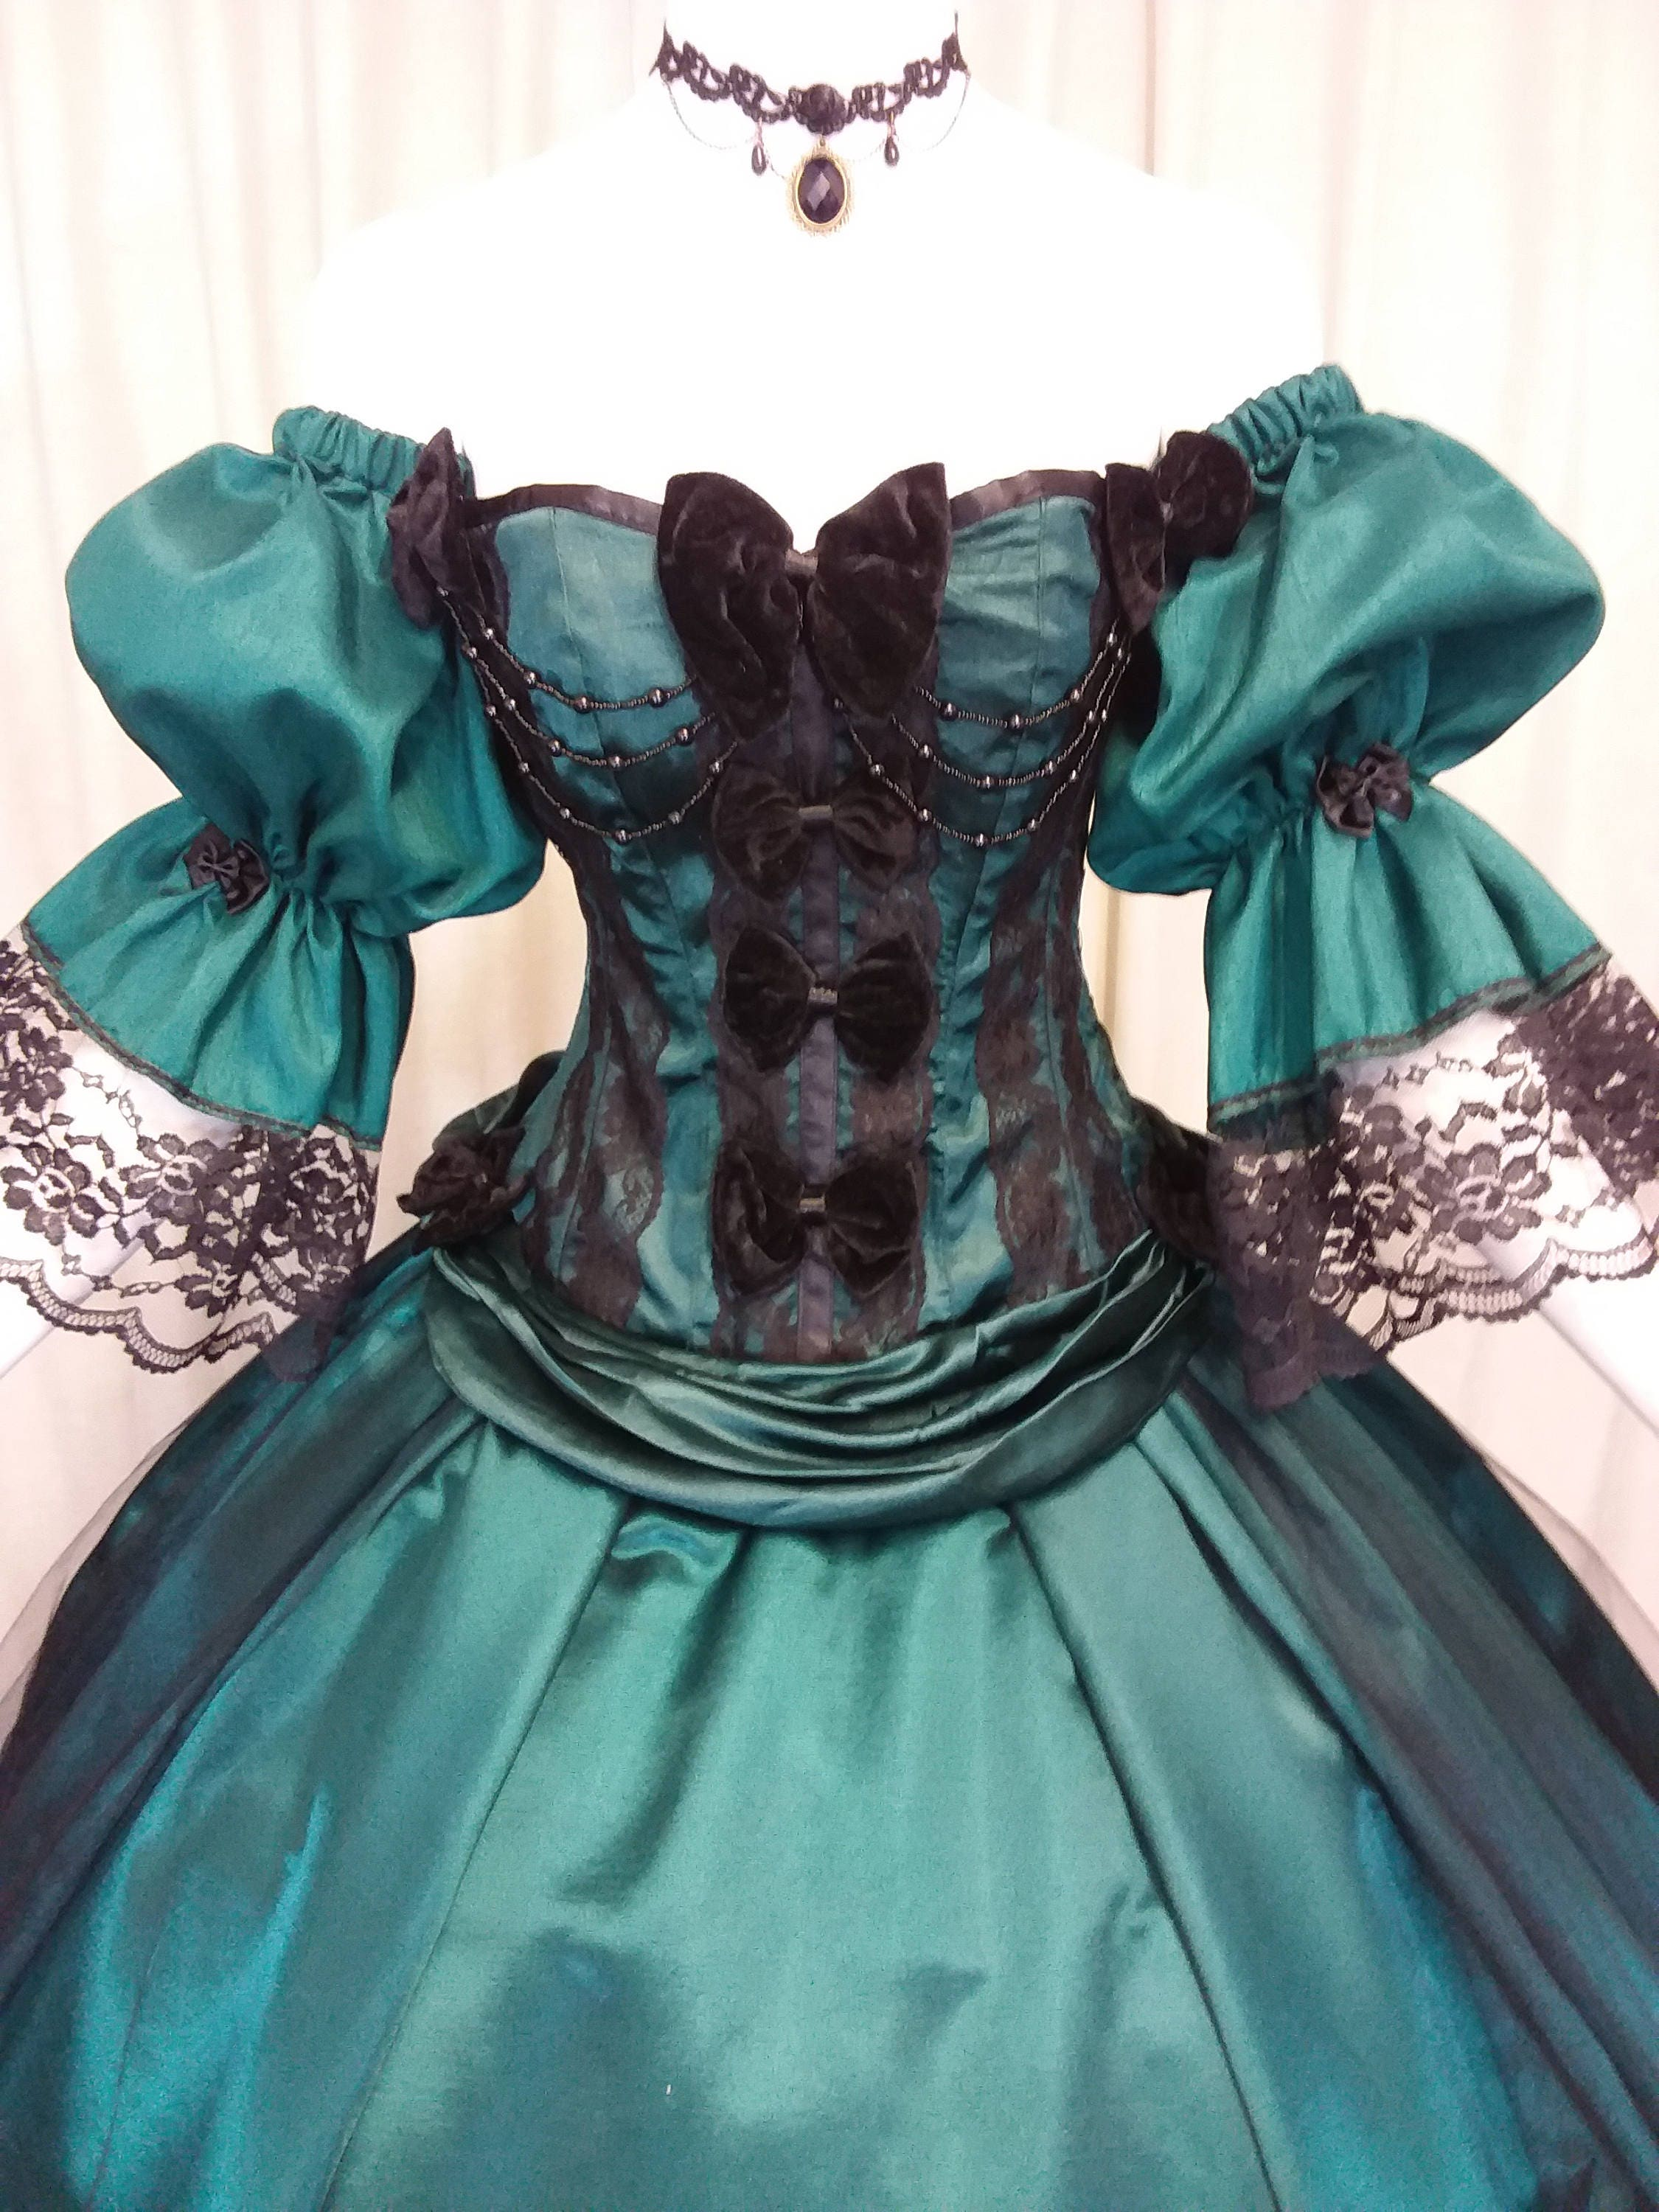 Halloween ball gown Victorian ballgown alternative wedding